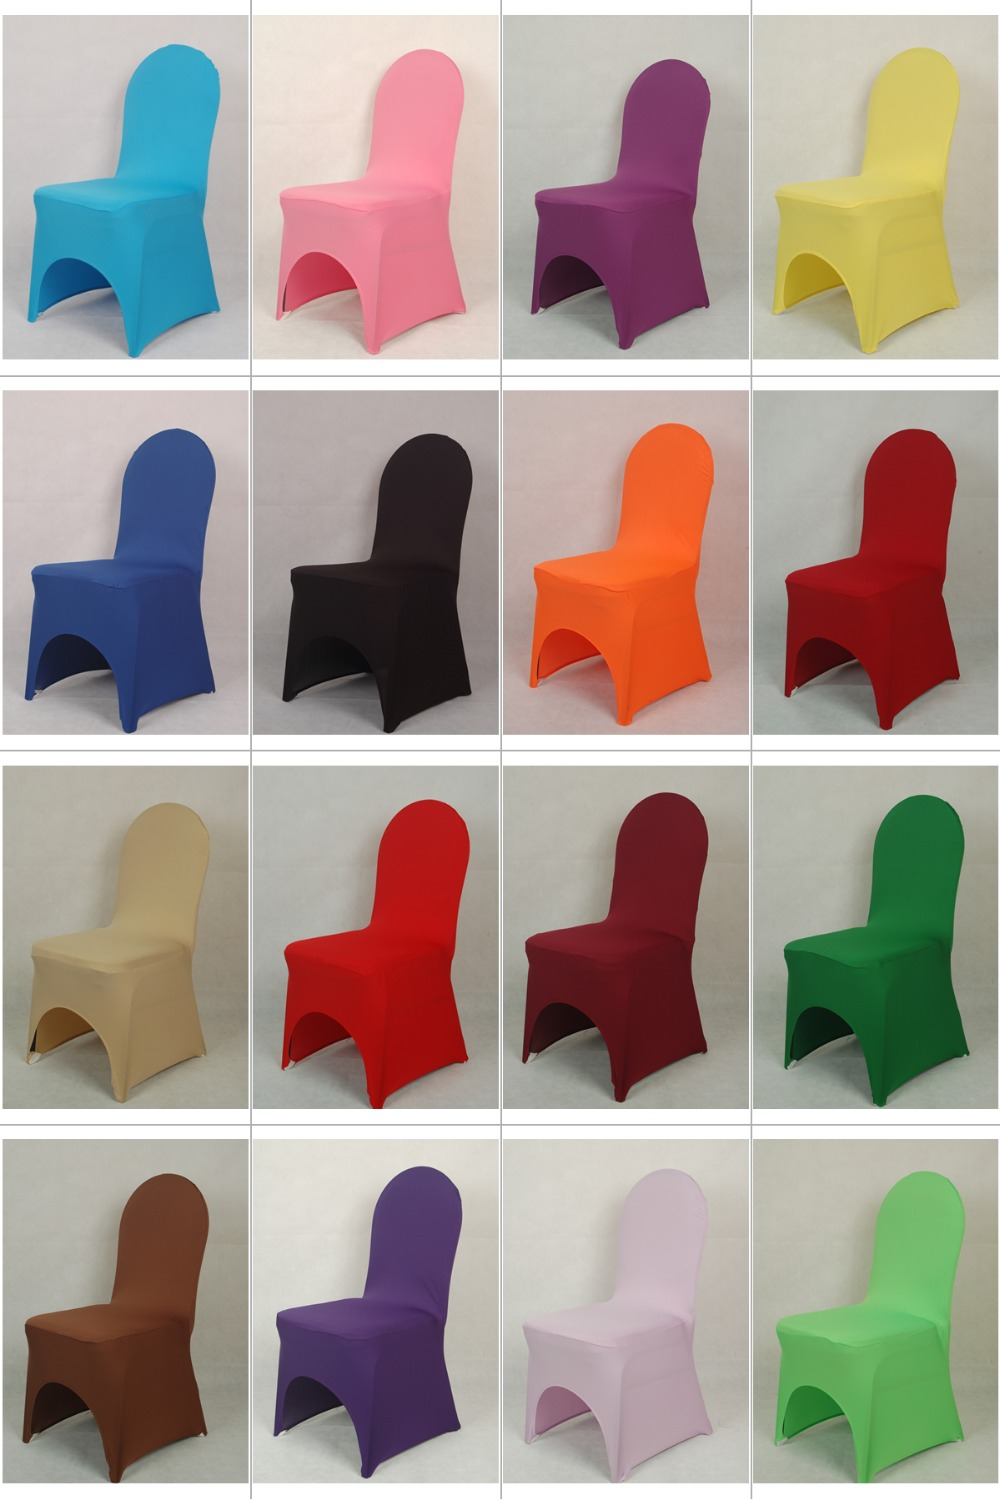 Lycra Universal Chair Cover For Wedding Decoration Spandex Chair Cover For Sale Banquet Chairs Arch Front Open Cheap Price